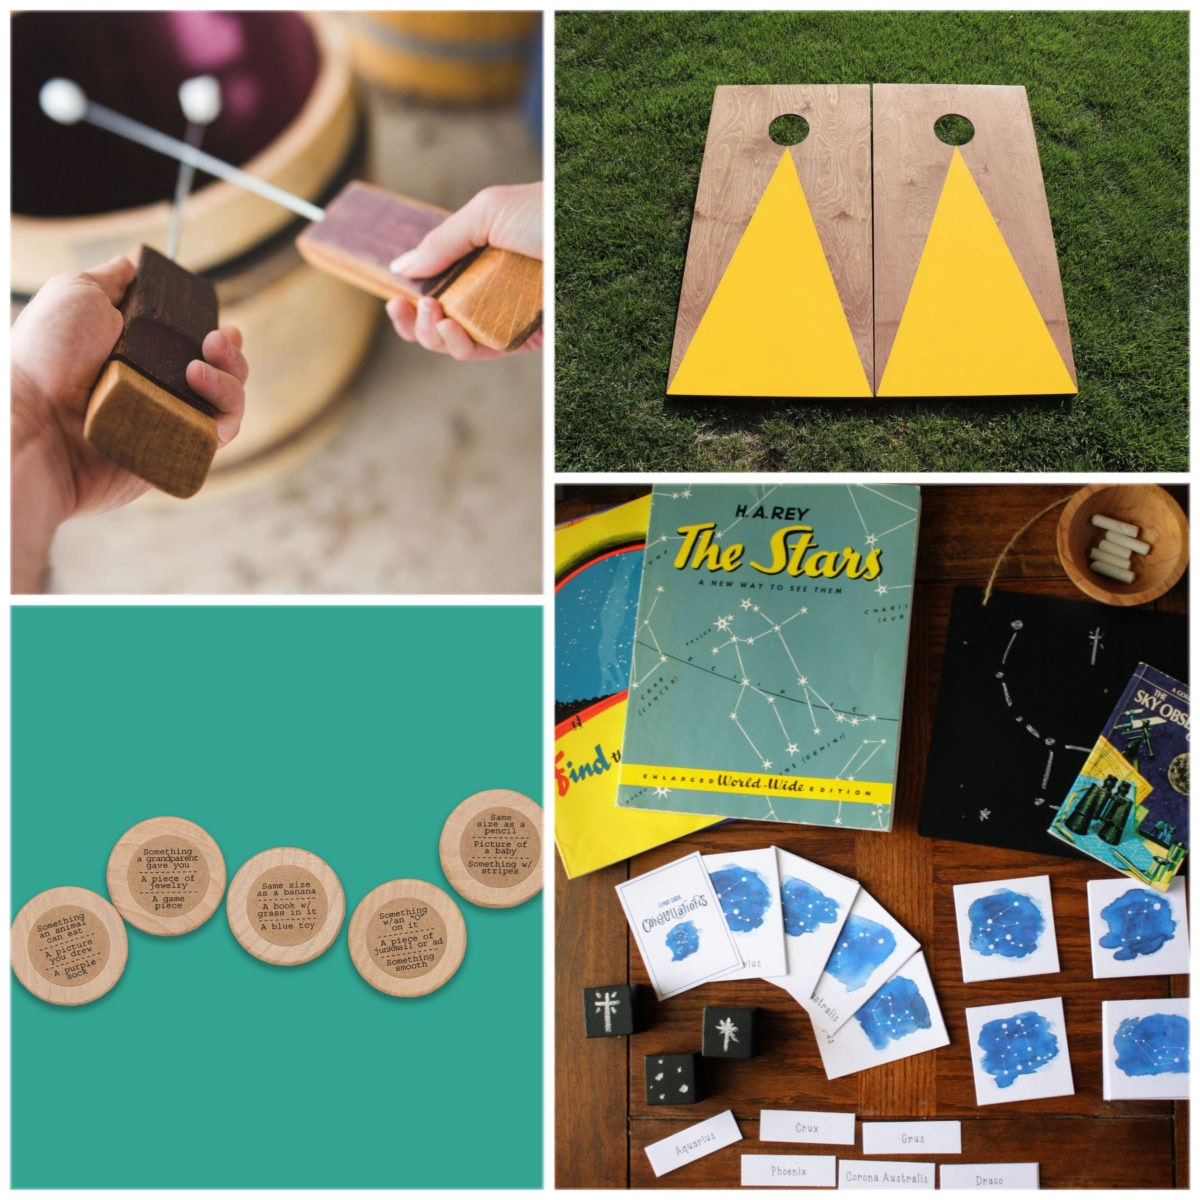 Activities for creating summer camp at home from Etsy